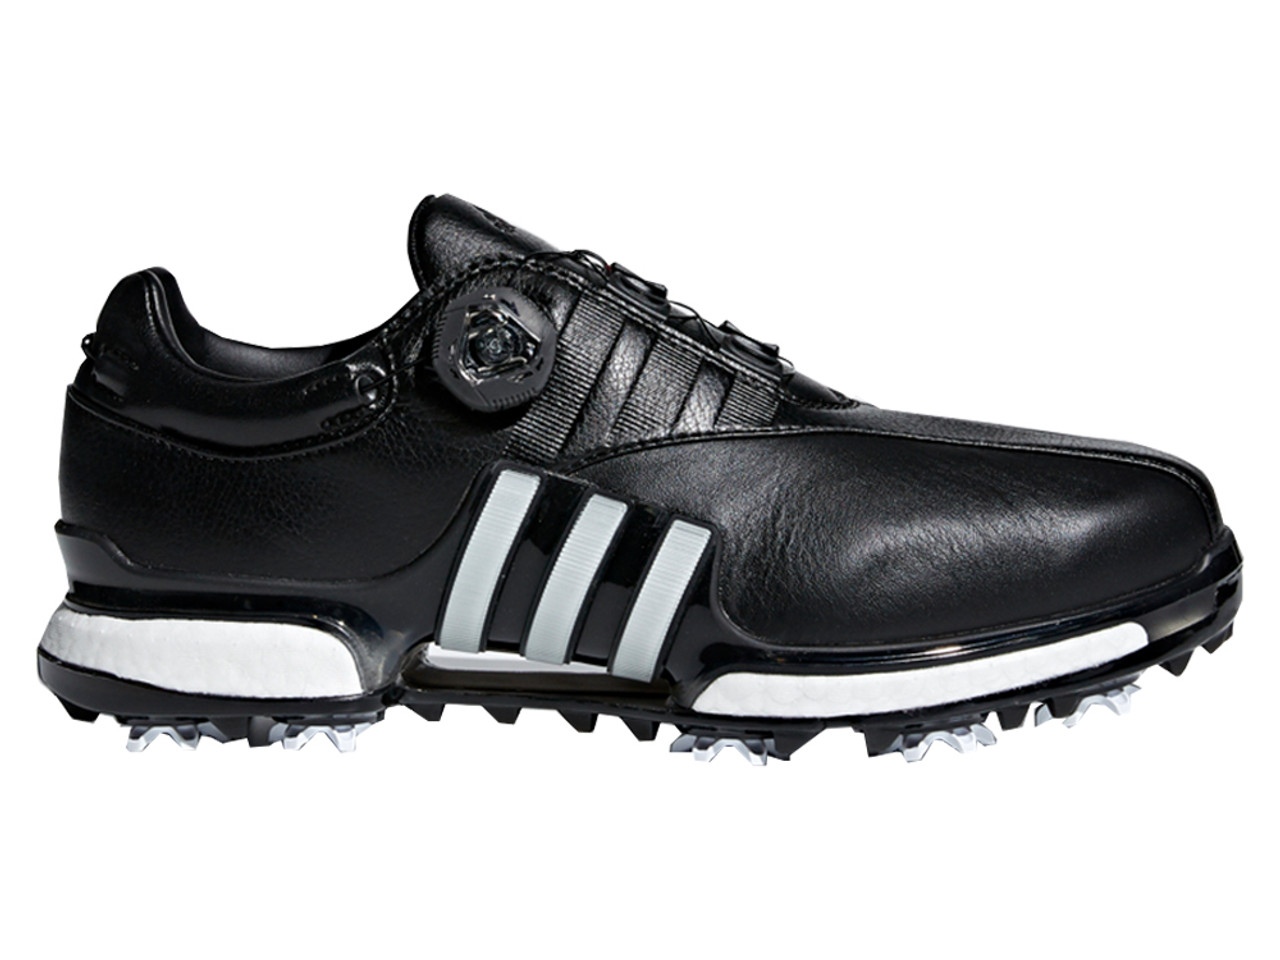 pretty nice d6752 61aa9 Adidas Tour360 Boost EQT BOA Golf Shoes - Core BlackWhite